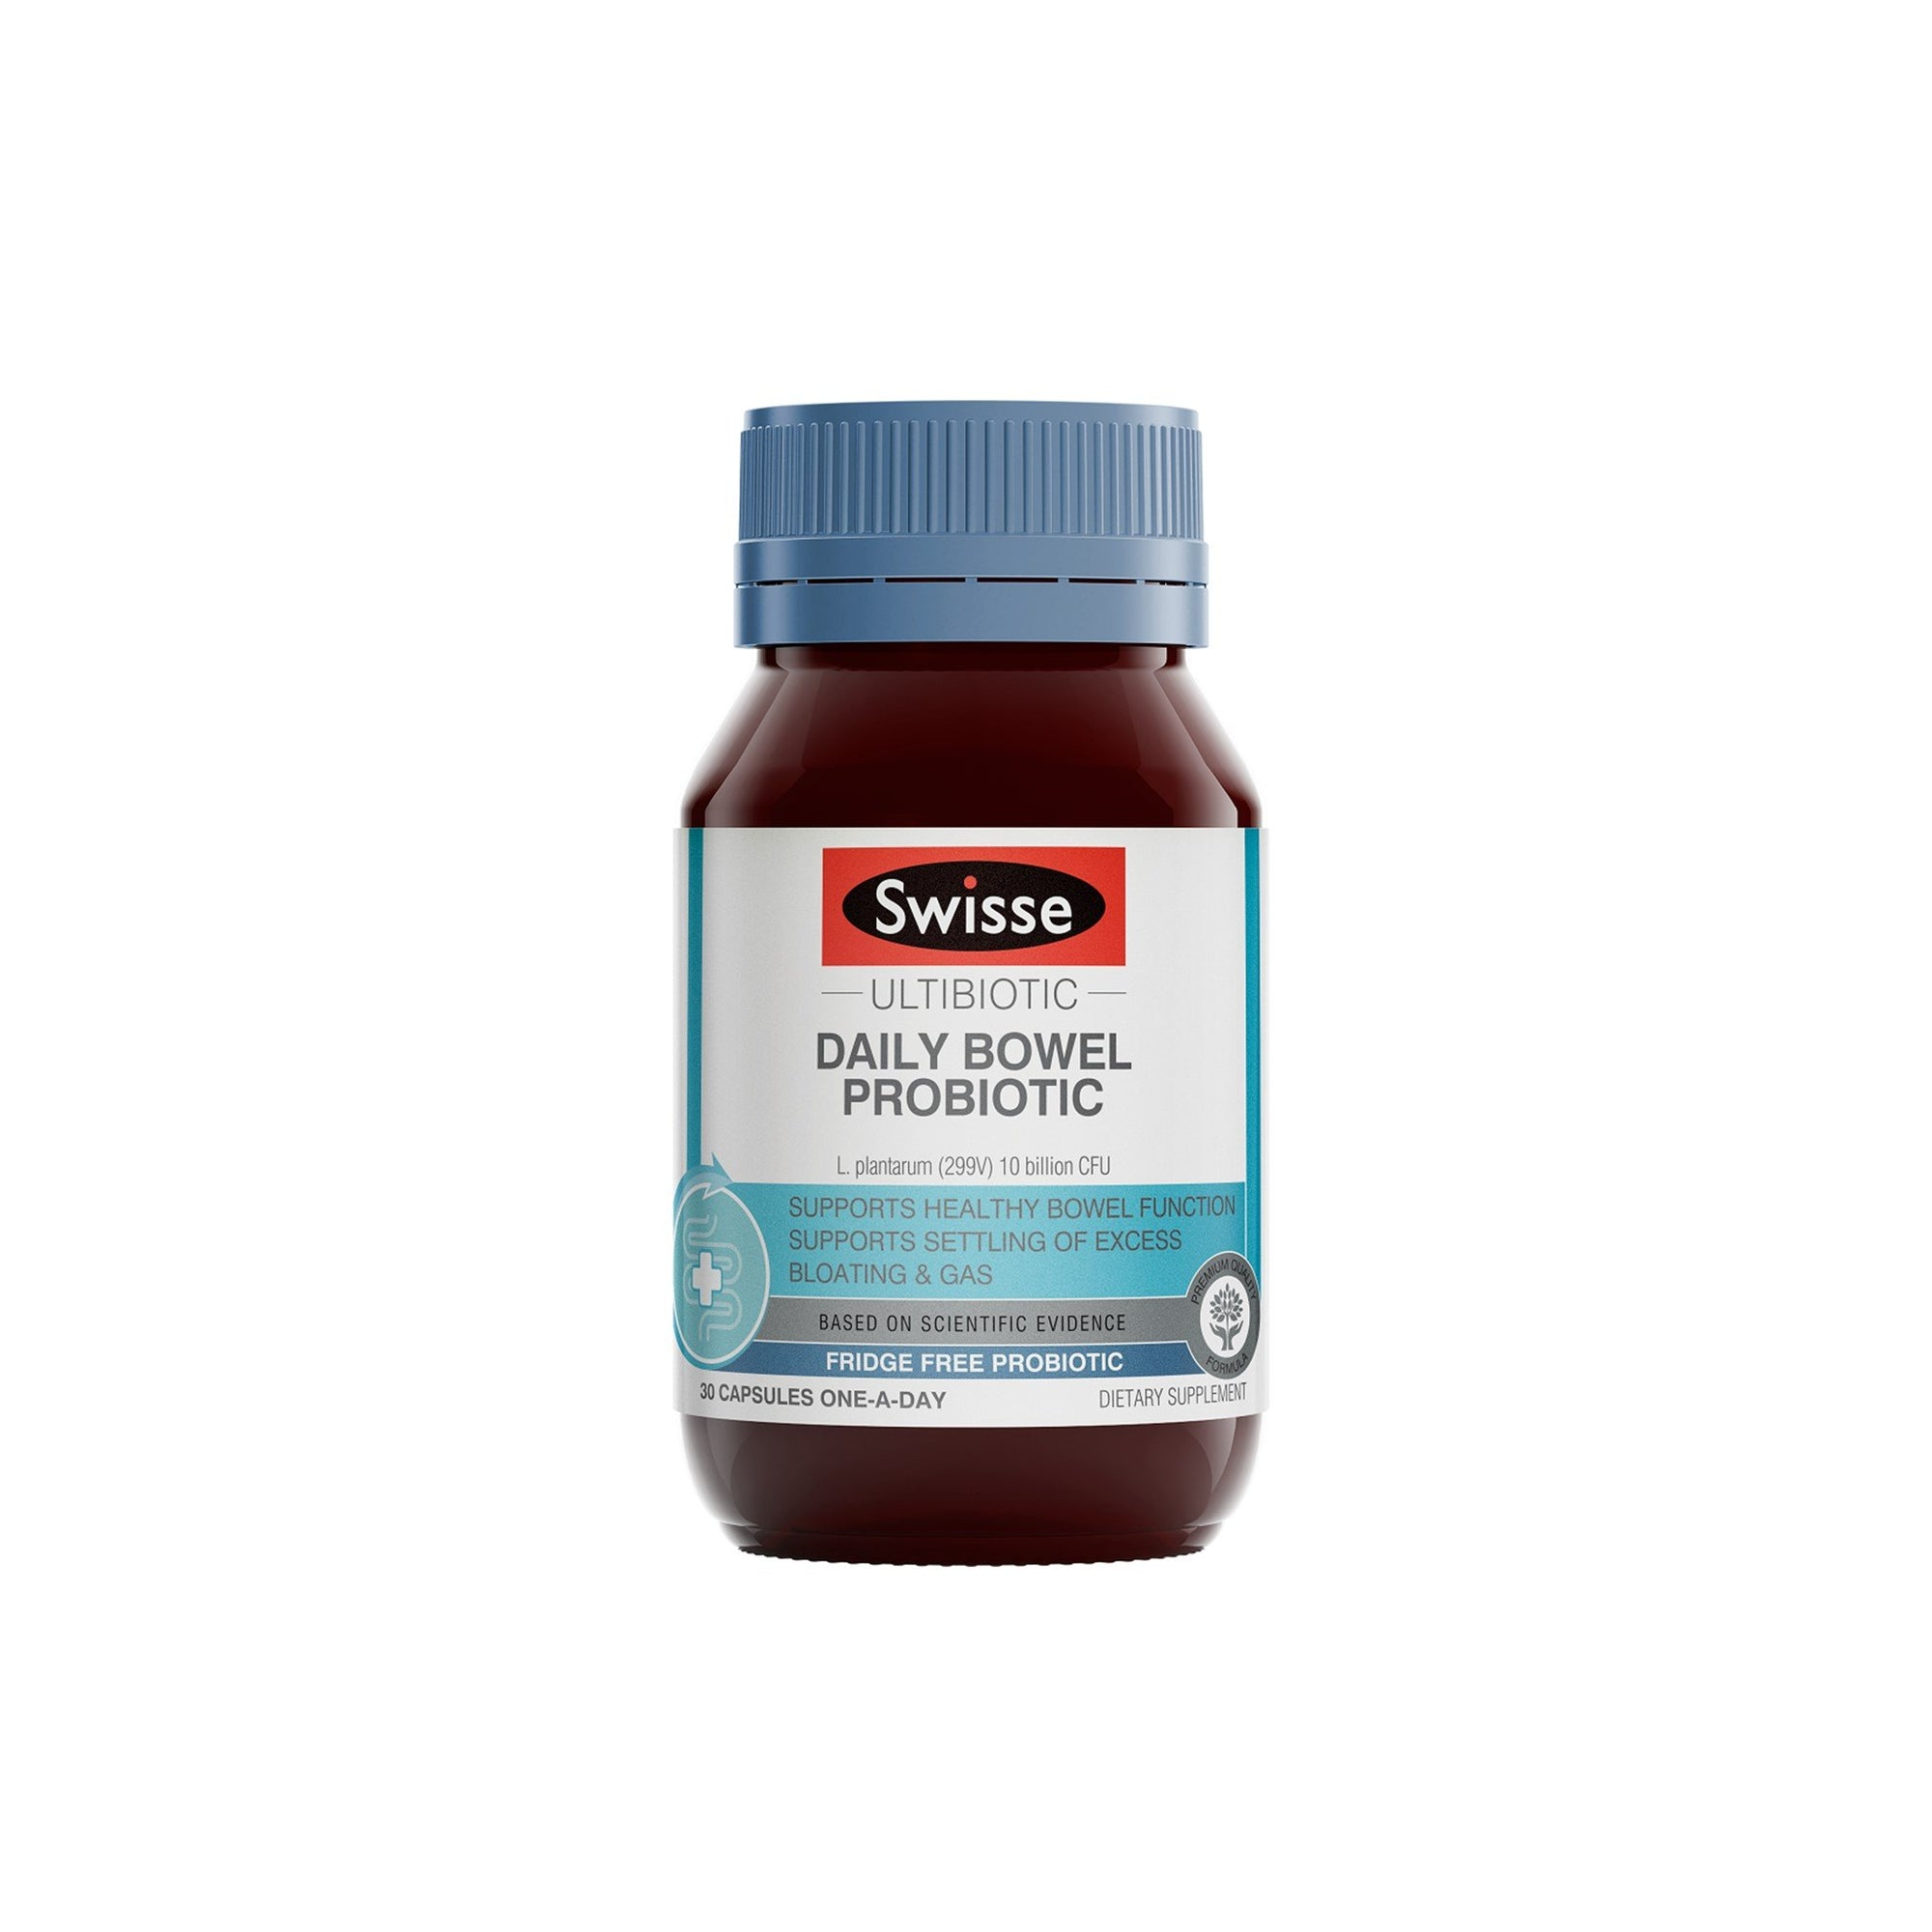 Swisse Ultibiotic Daily Bowel Probiotic 30 Capsules